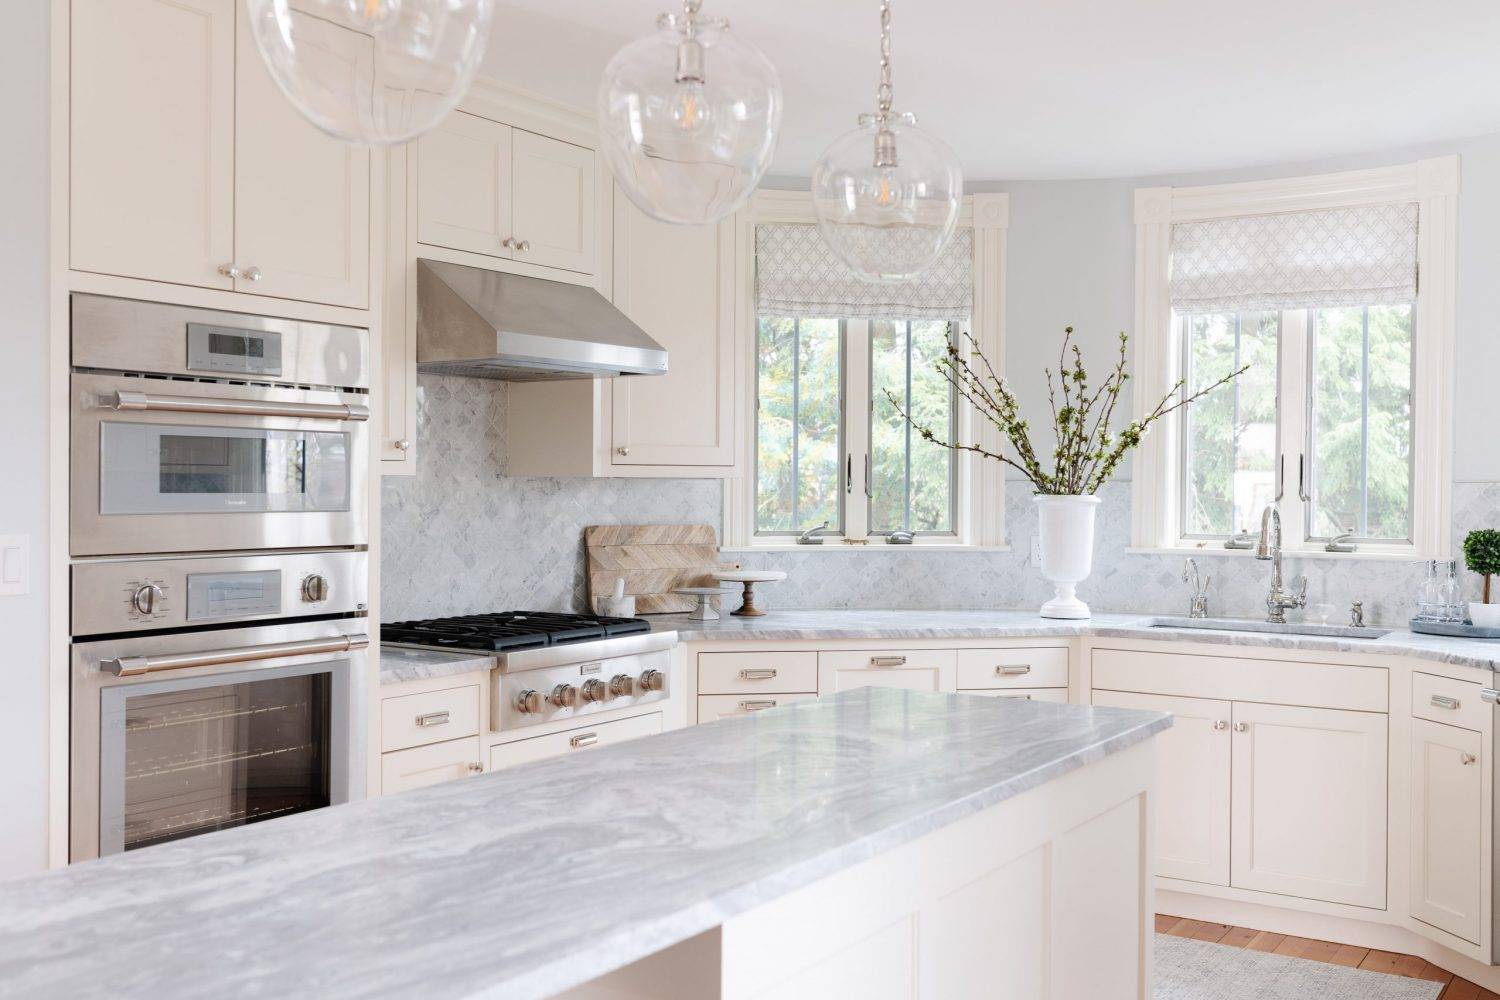 White and gray kitchen with white cabinets and gray tile backsplash and marble countertops